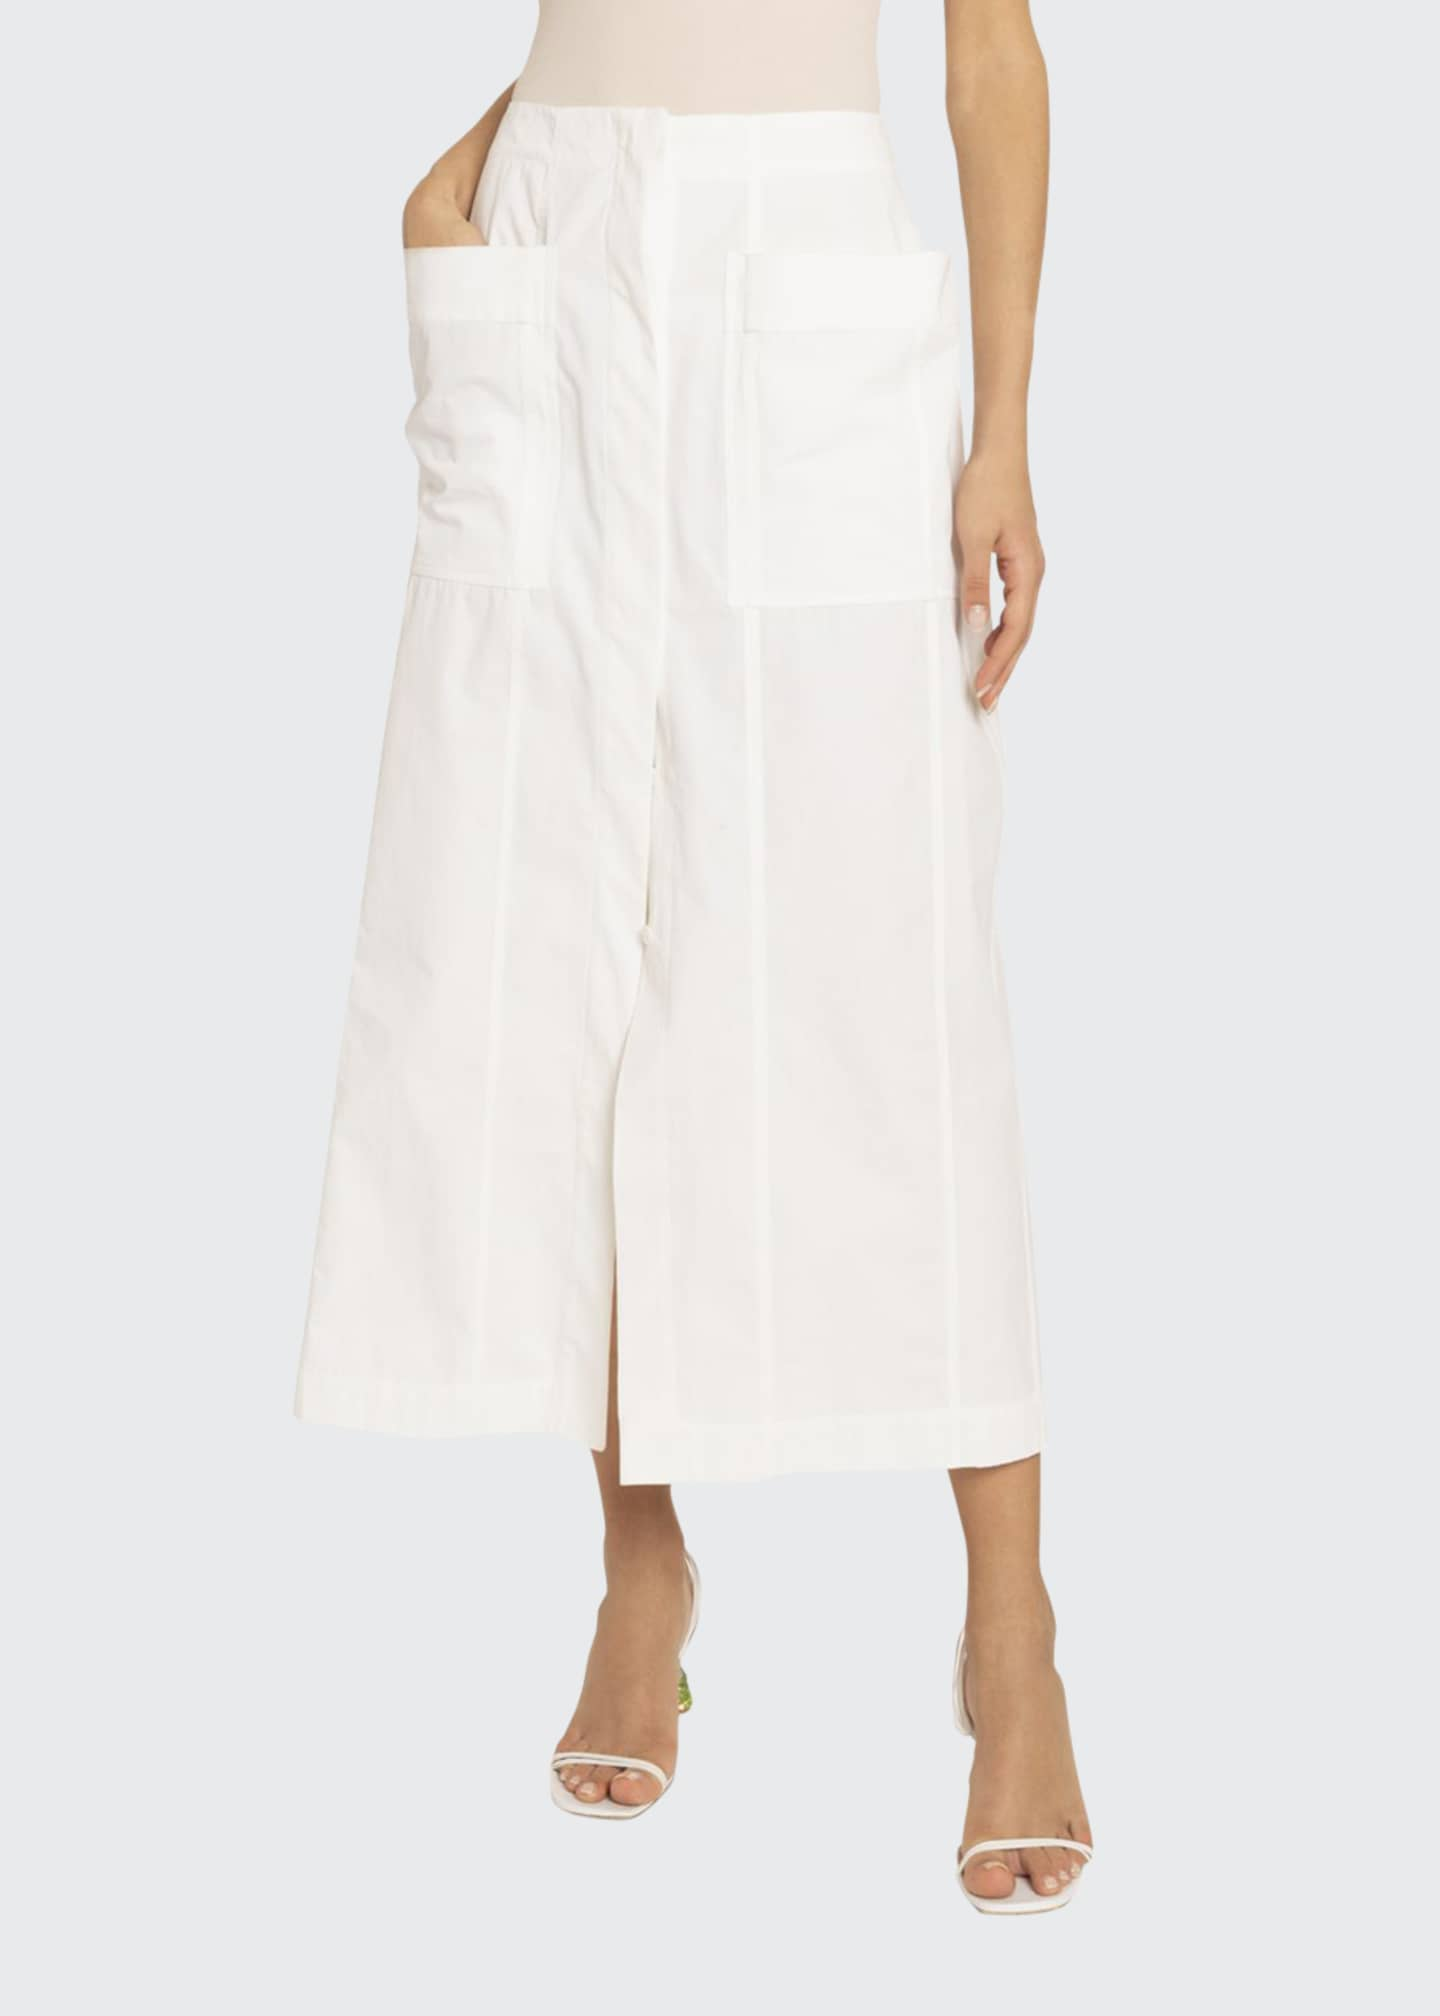 Jacquemus La Bastide Cotton Midi Dress